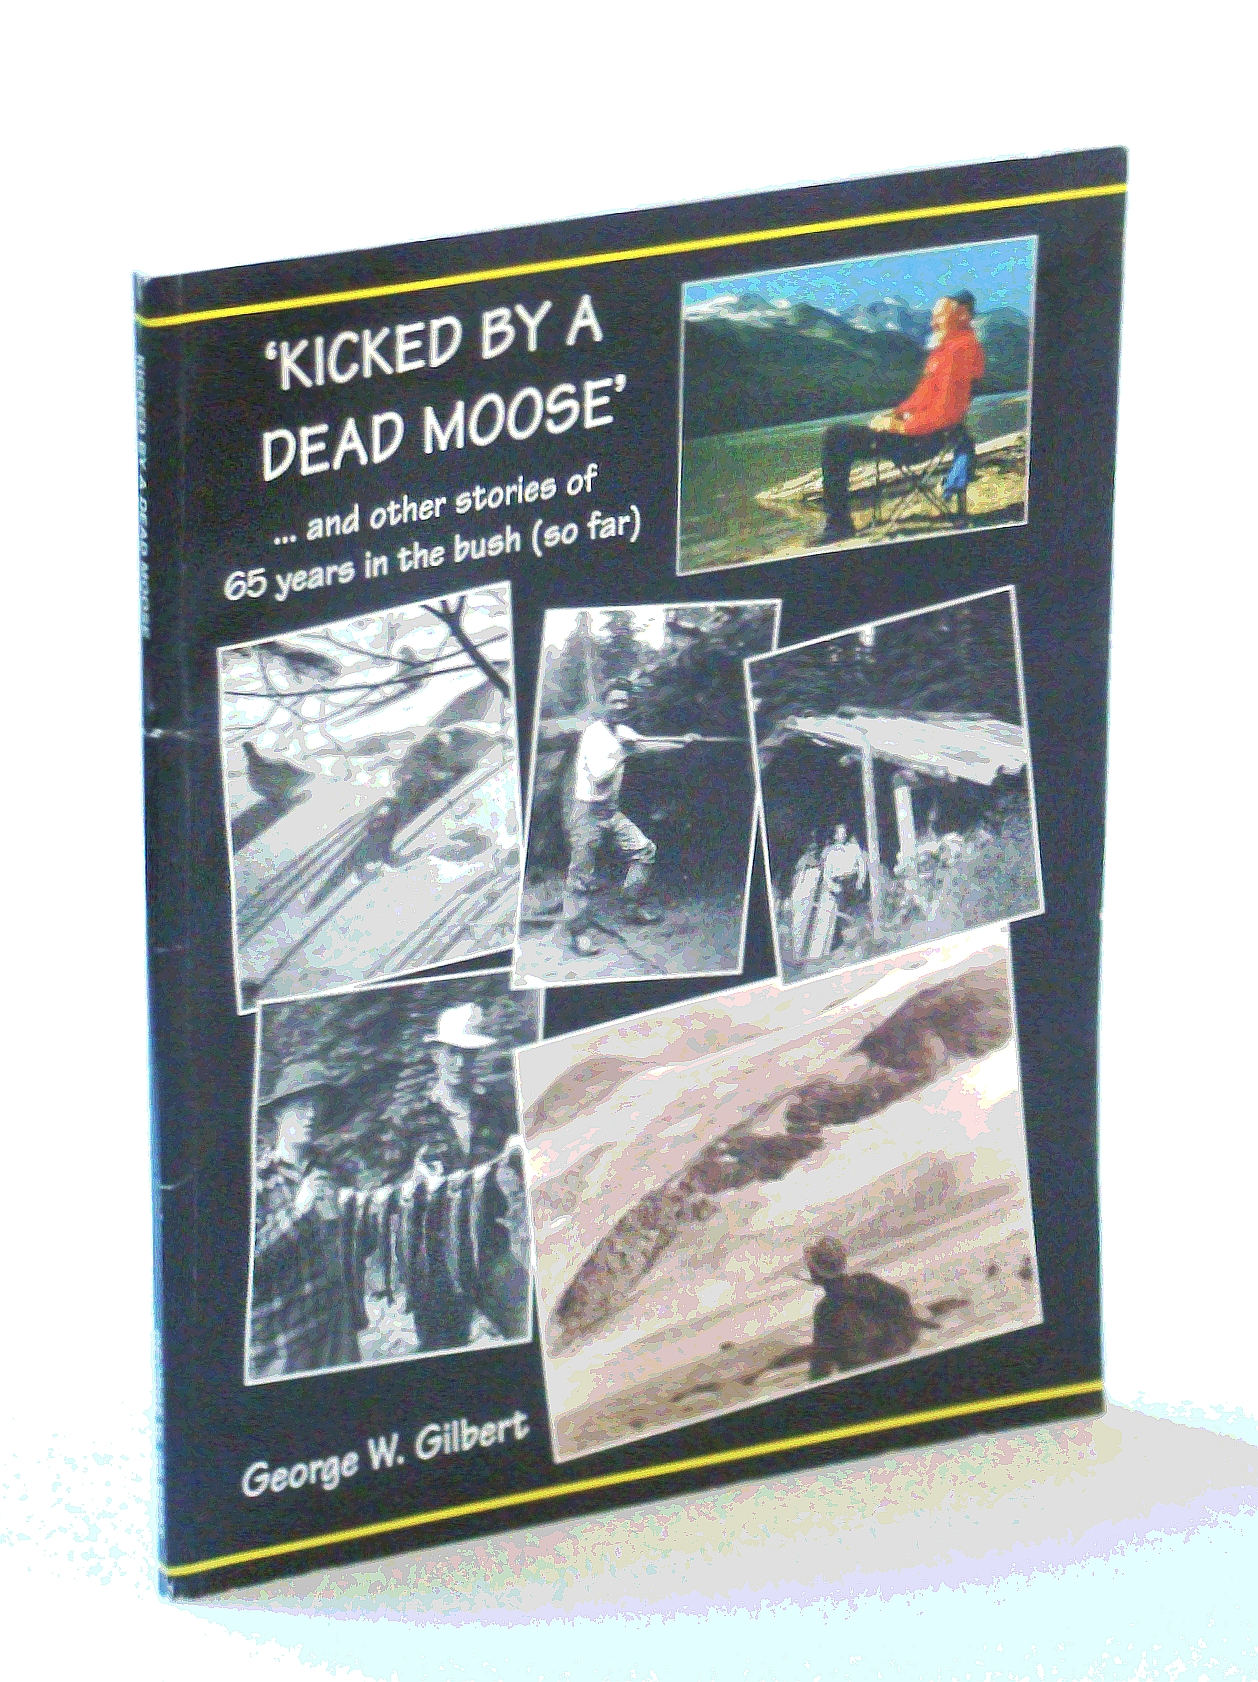 Kicked By a Dead Moose and Other Stories of 65 Years in the Bush (so far)